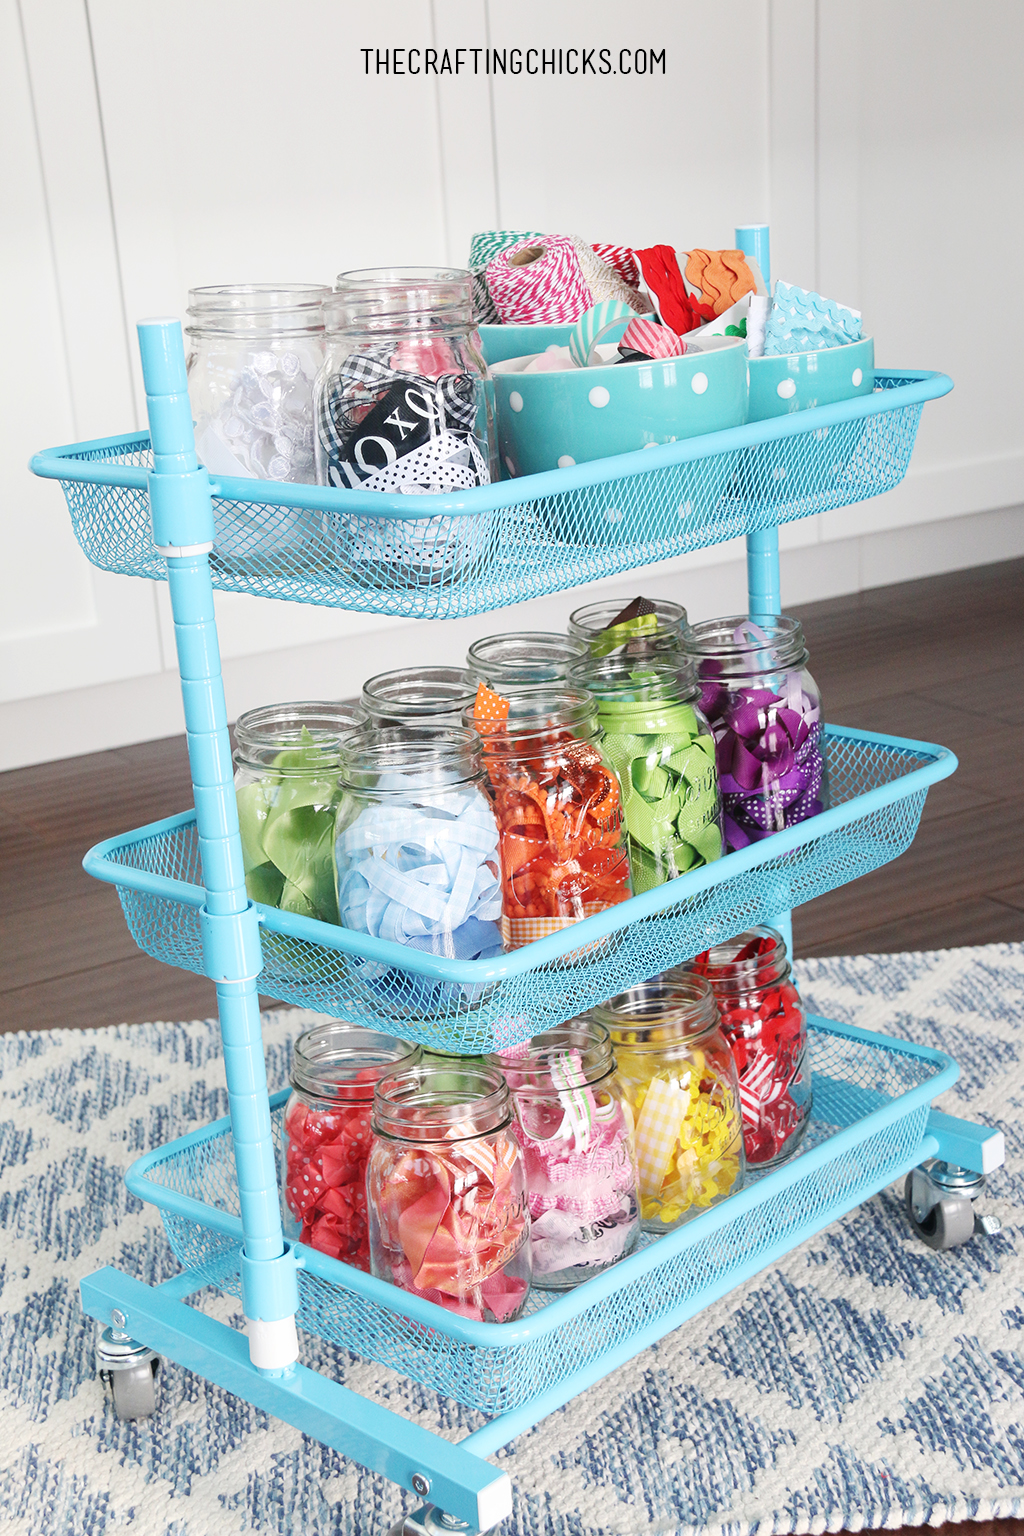 Ribbon Organization Cart - This ribbon organization cart was so simple to put together!